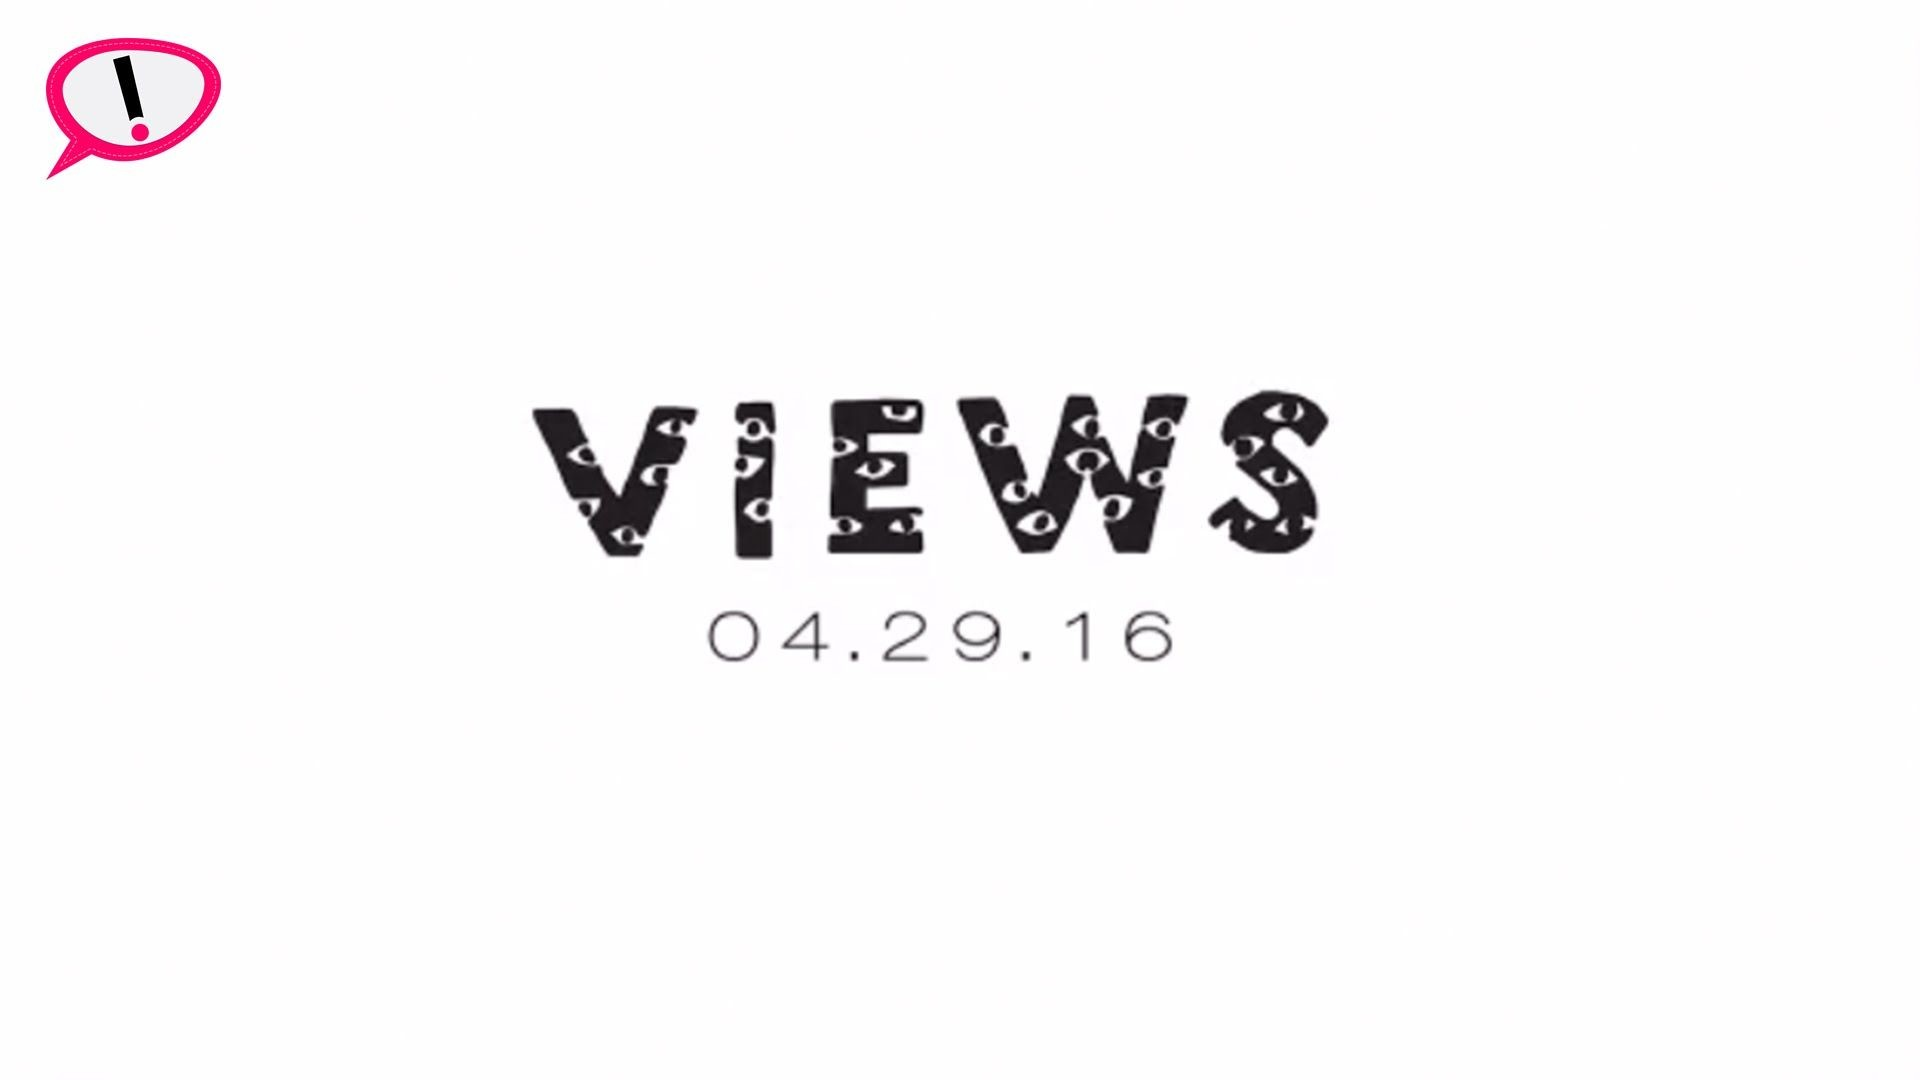 "1920x1080 1200x800 Drake shows off a life of luxury in 'Views' digital booklet | RWD"">"